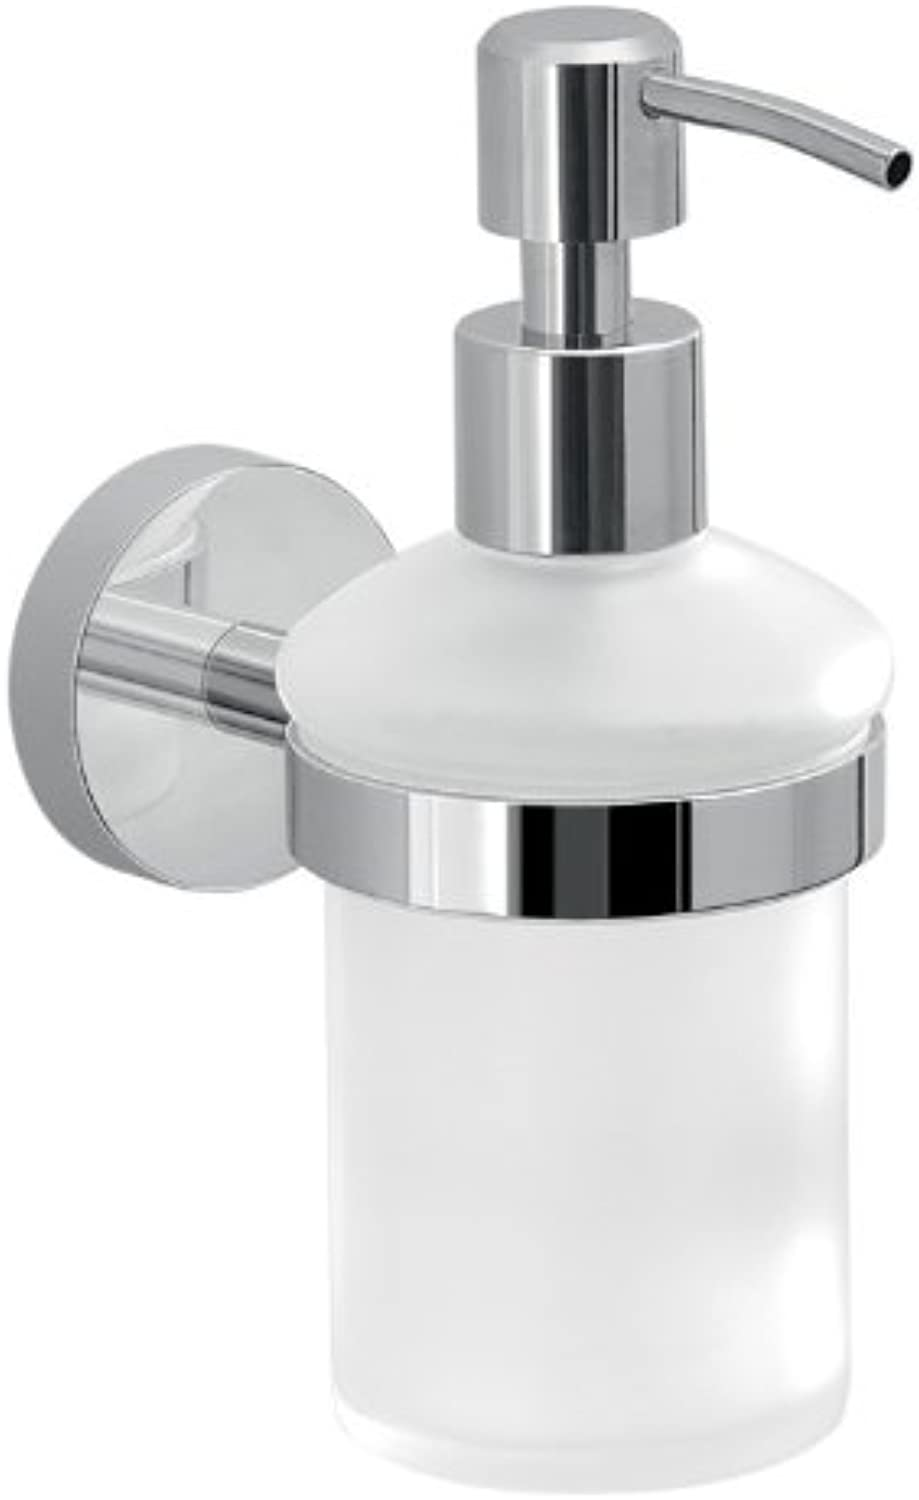 Gedy 2381-13 Frosted Glass Soap with Wall Mount, Chrome